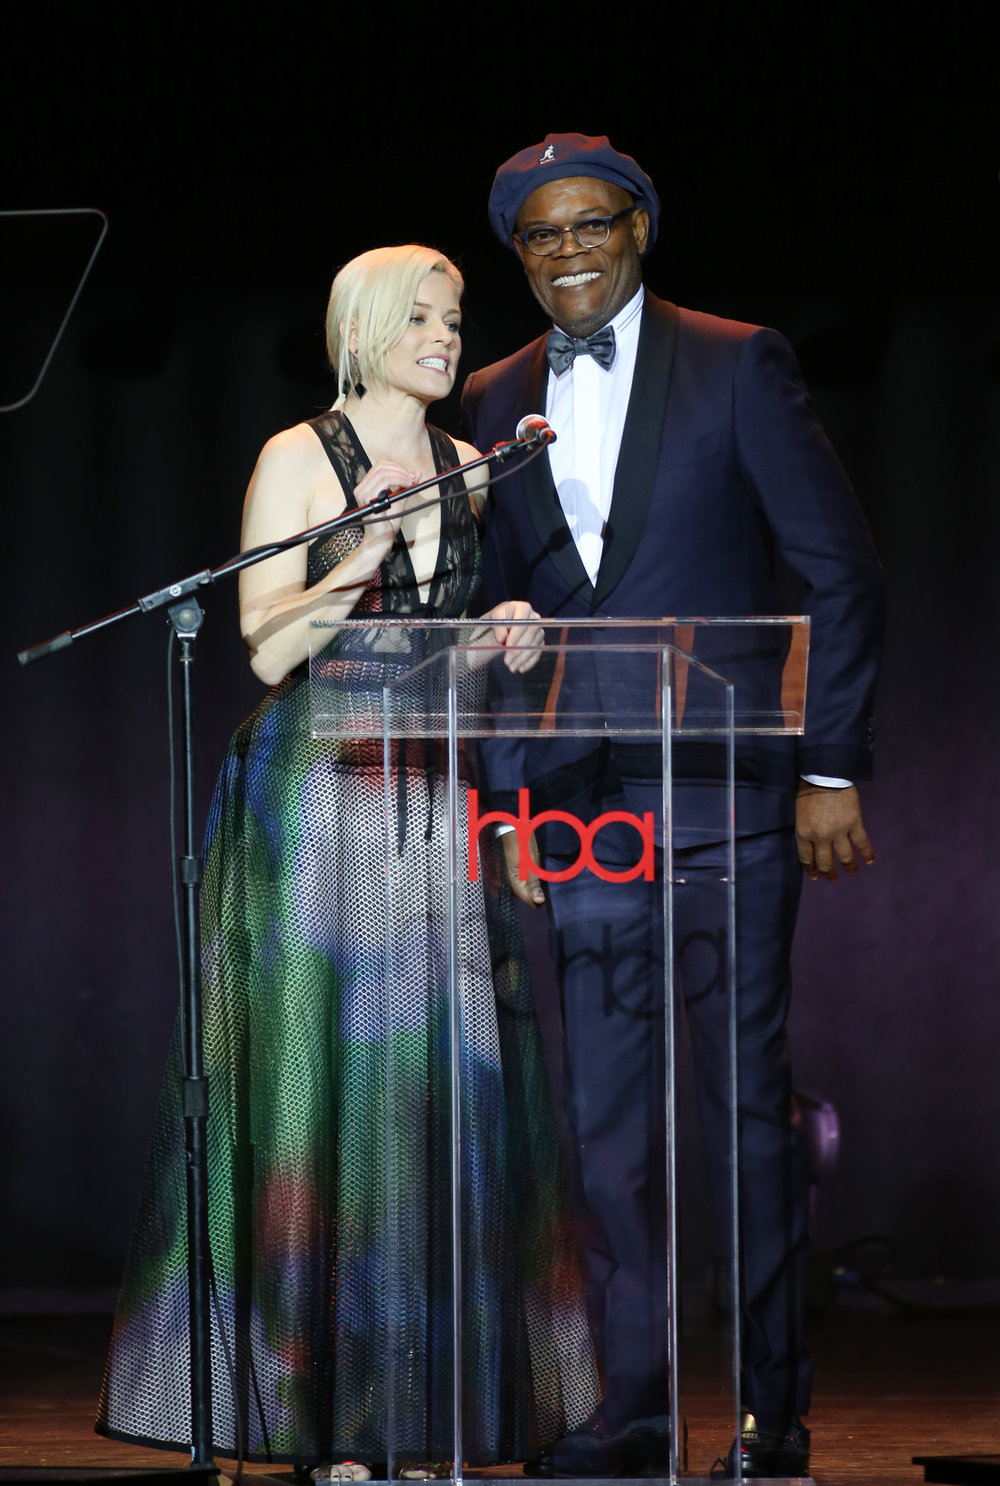 Samuel Jackson & Elizabeth Banks | Feb 25, 2018, Hollywood Beauty Awards held at the Avalon